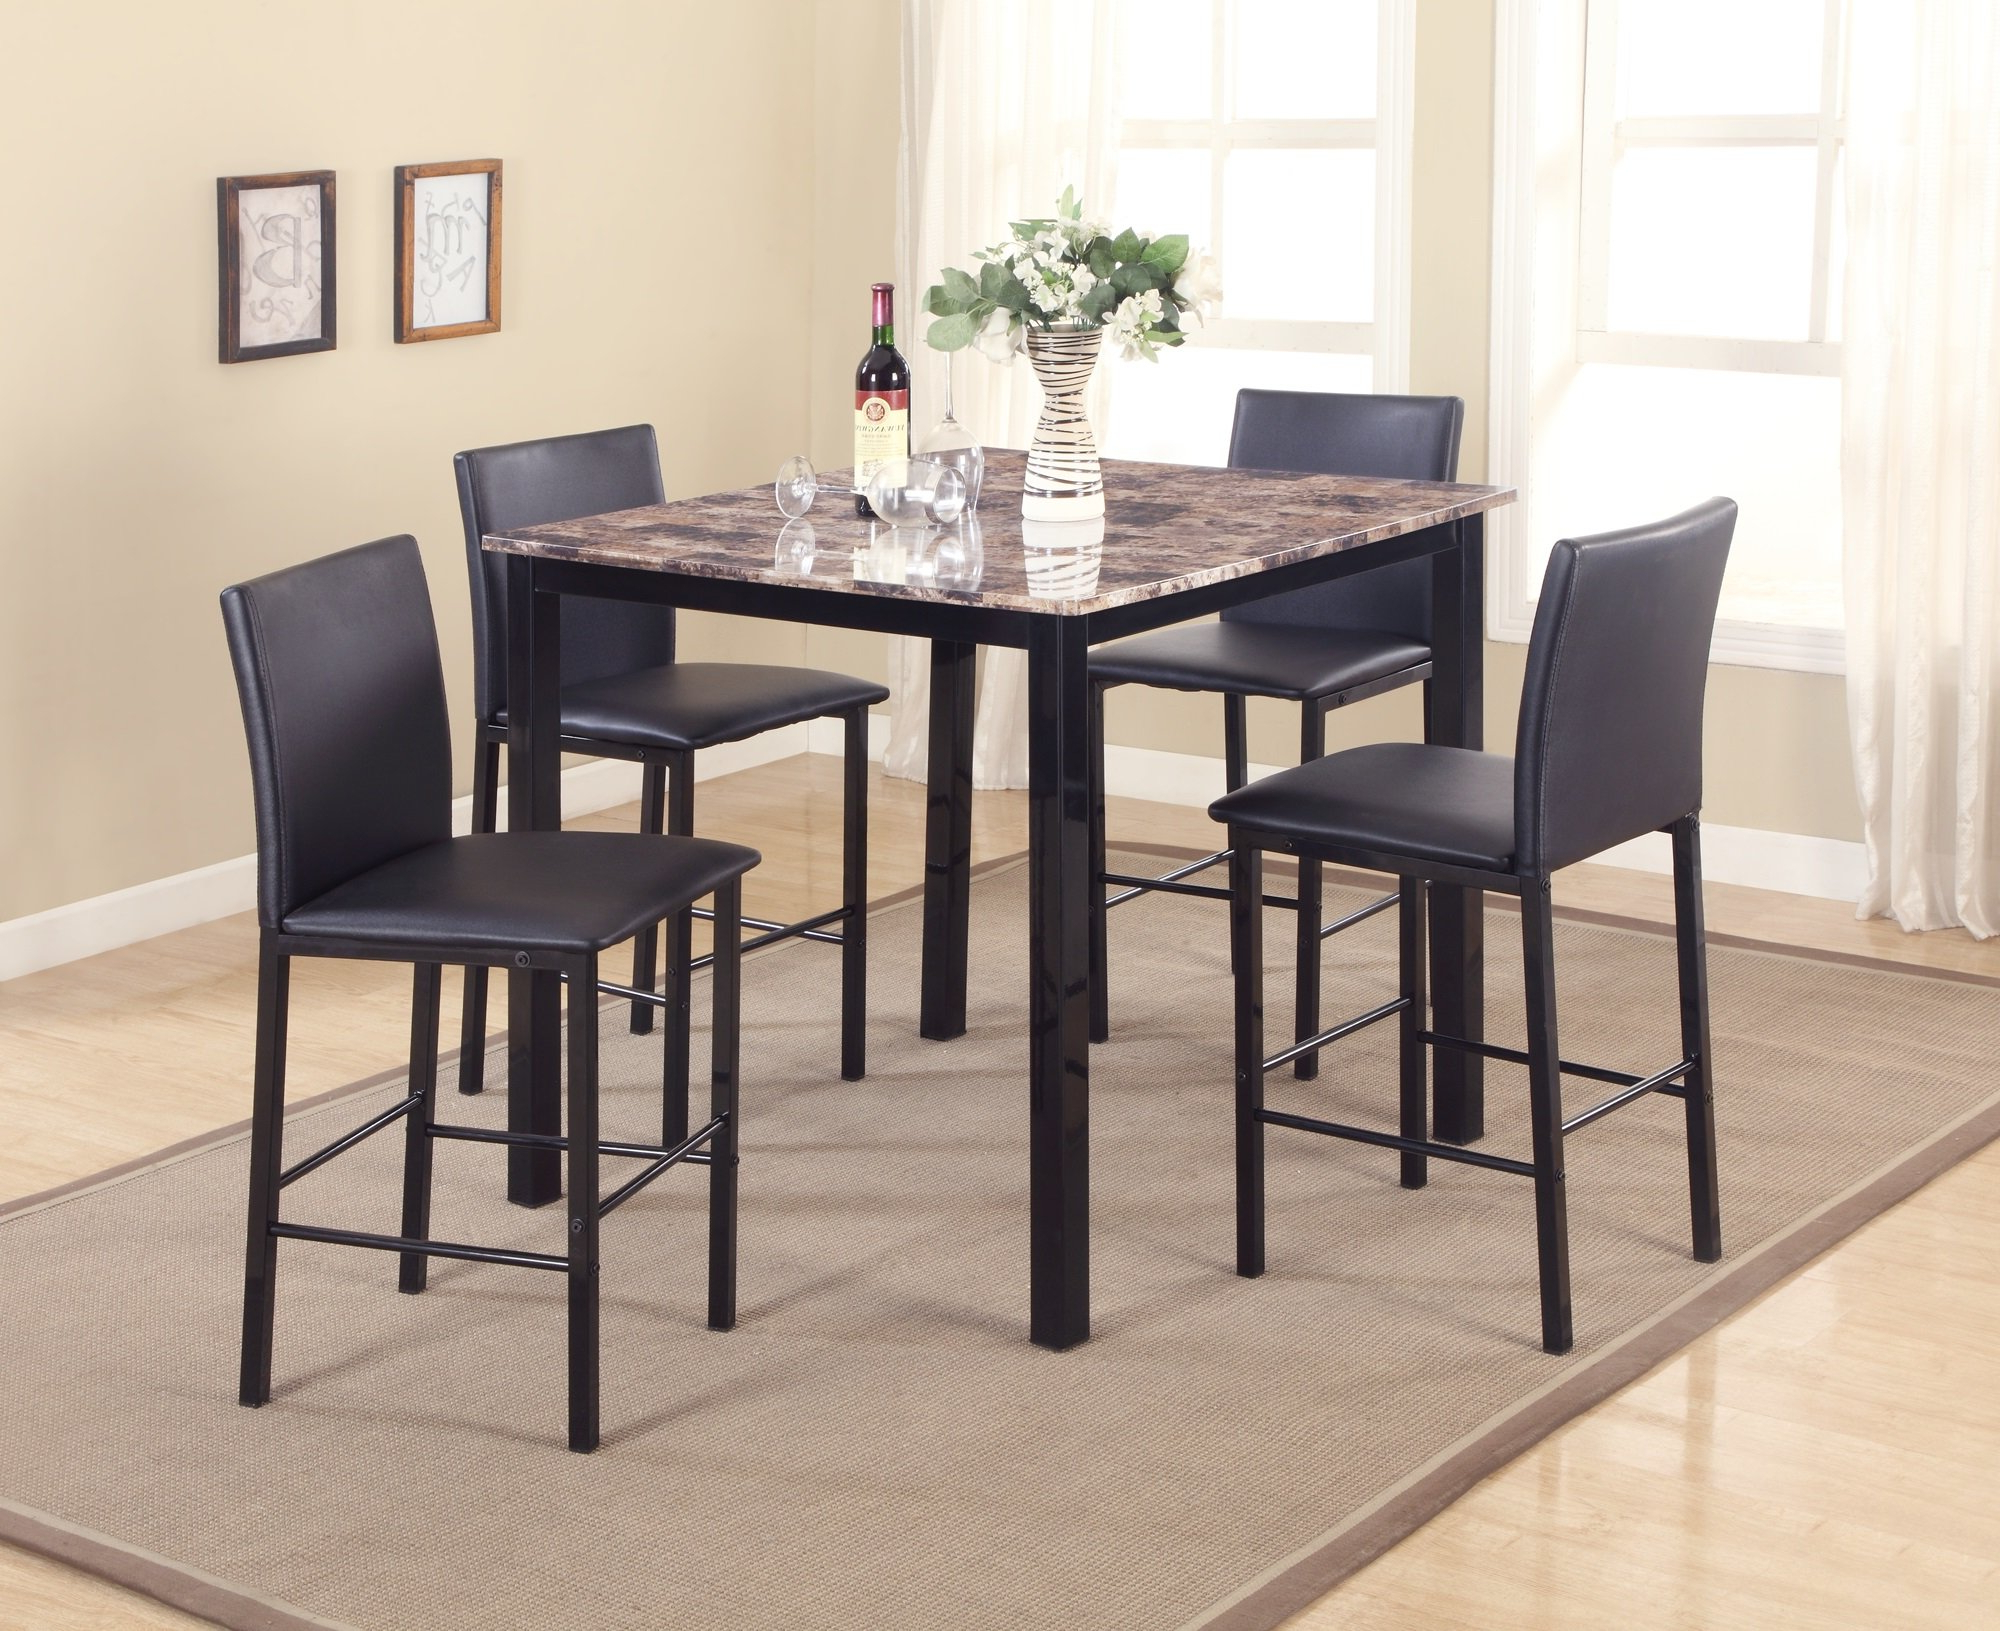 Noyes 5 Piece Counter Height Dining Set Pertaining To Popular Noyes 5 Piece Dining Sets (Gallery 1 of 20)